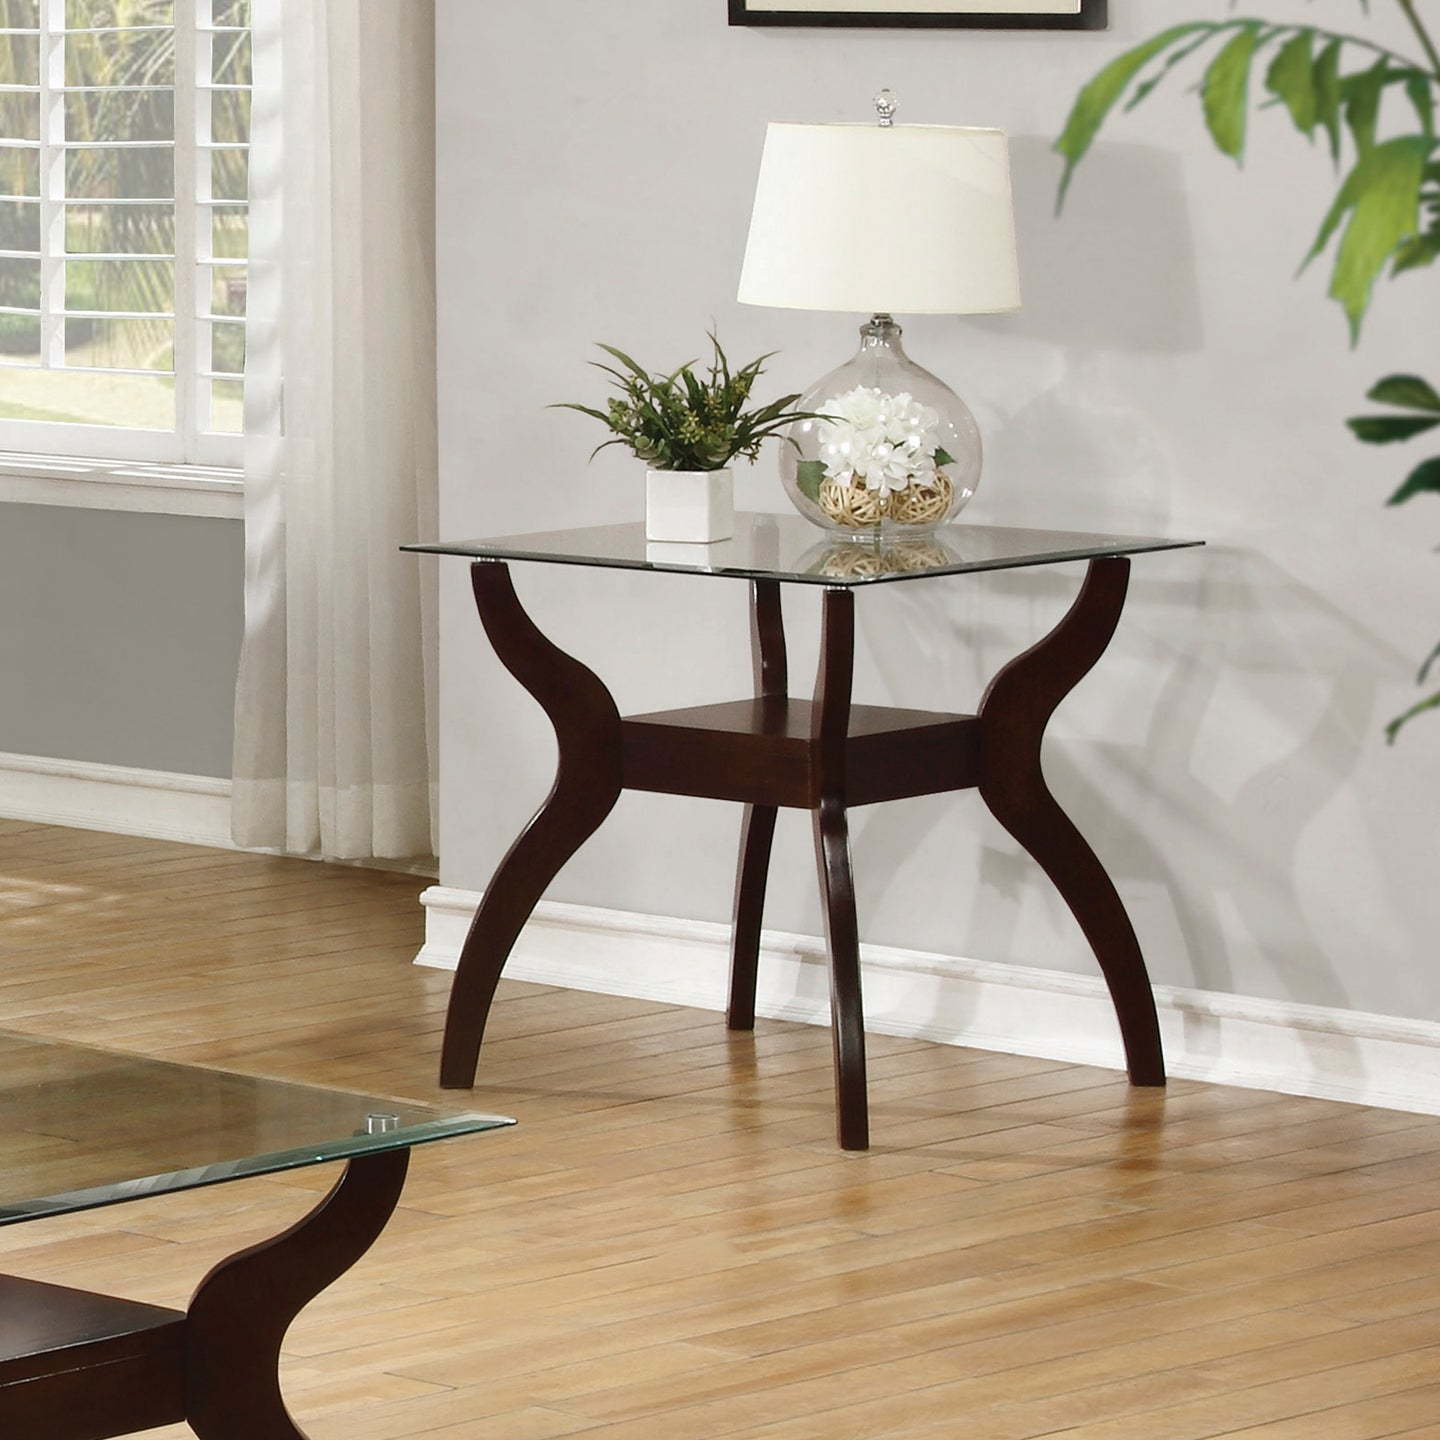 Coaster Cappuccino and tempered Glass End Table